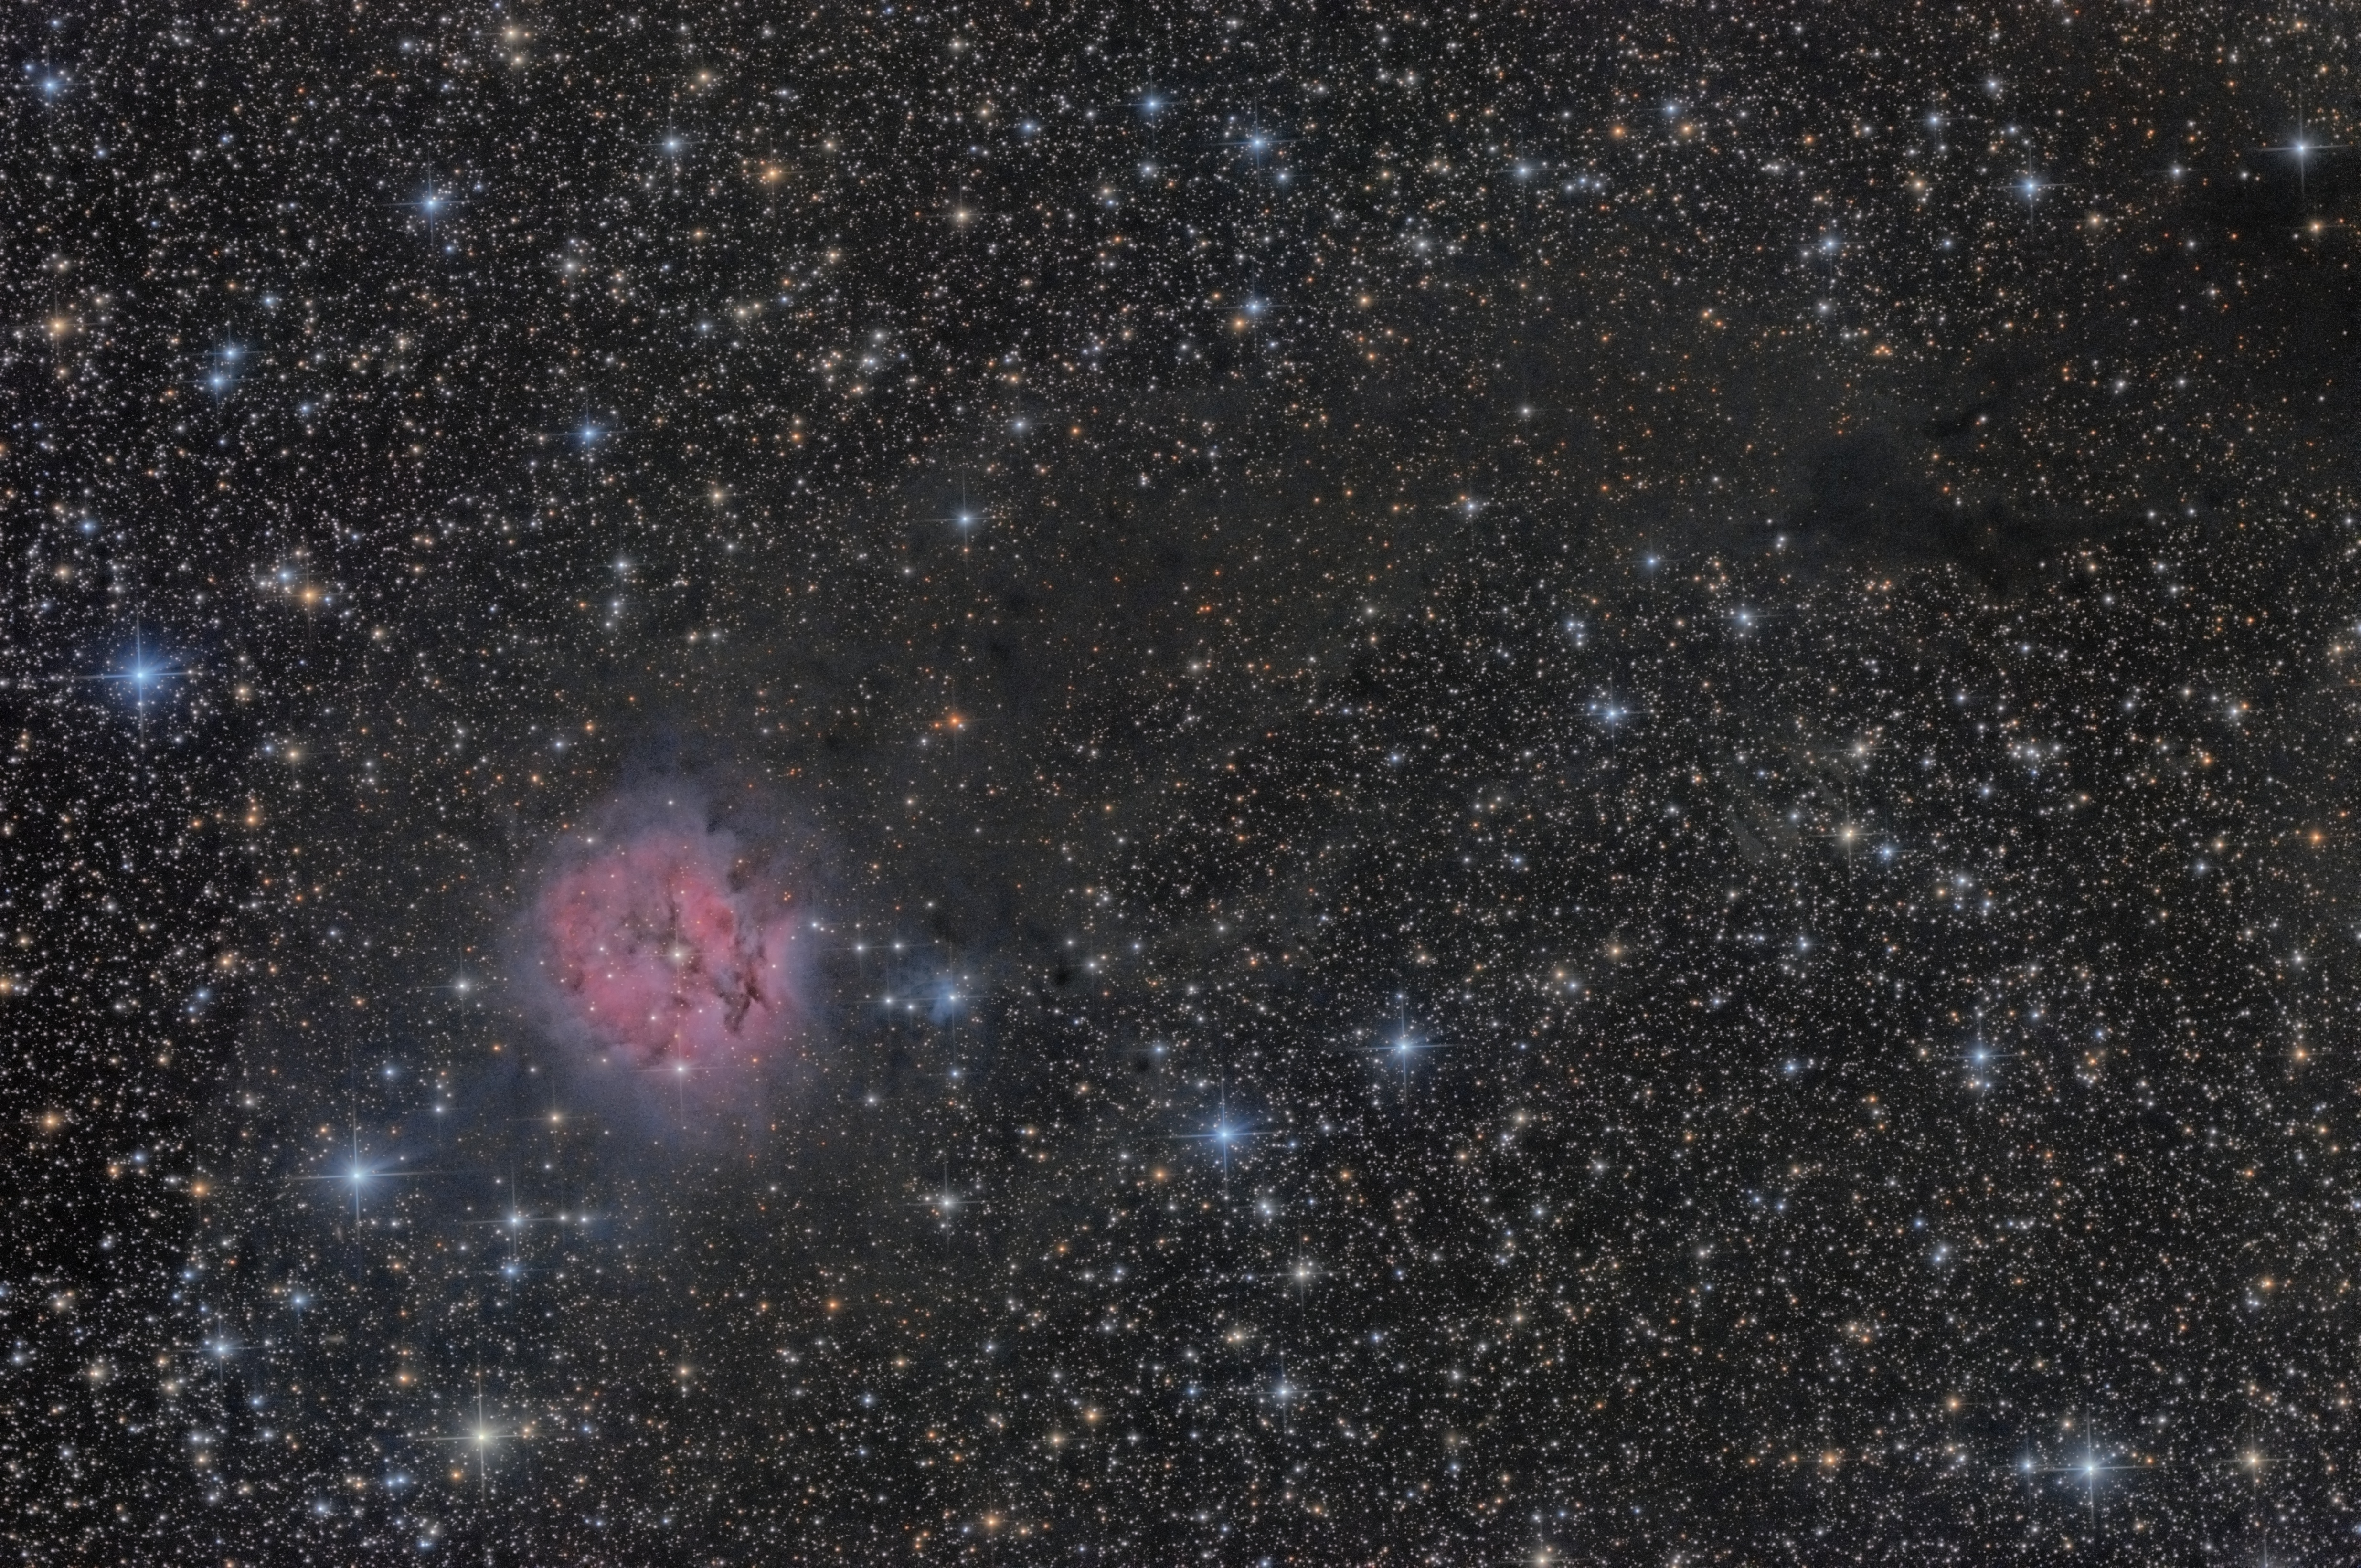 Cocoon Nebula (IC 5146), LDN 1042 and vdB147 in Cygnus